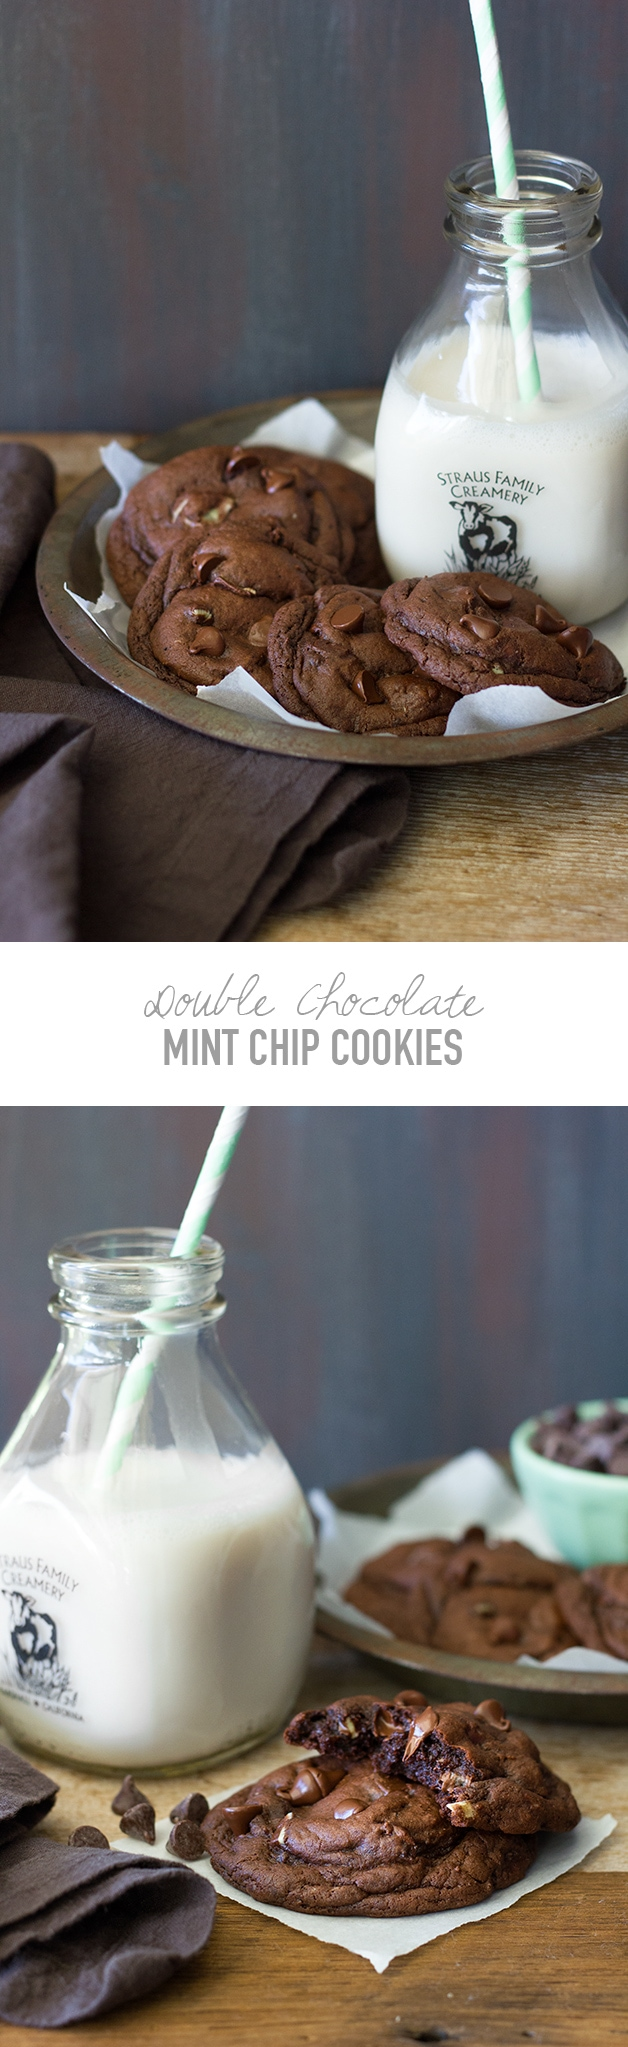 Double Chocolate Mint Chip Cookies - Super thick and fudgy, extra-chocolatey cookies loaded with mint chocolate chips and chunks of Andes mints.